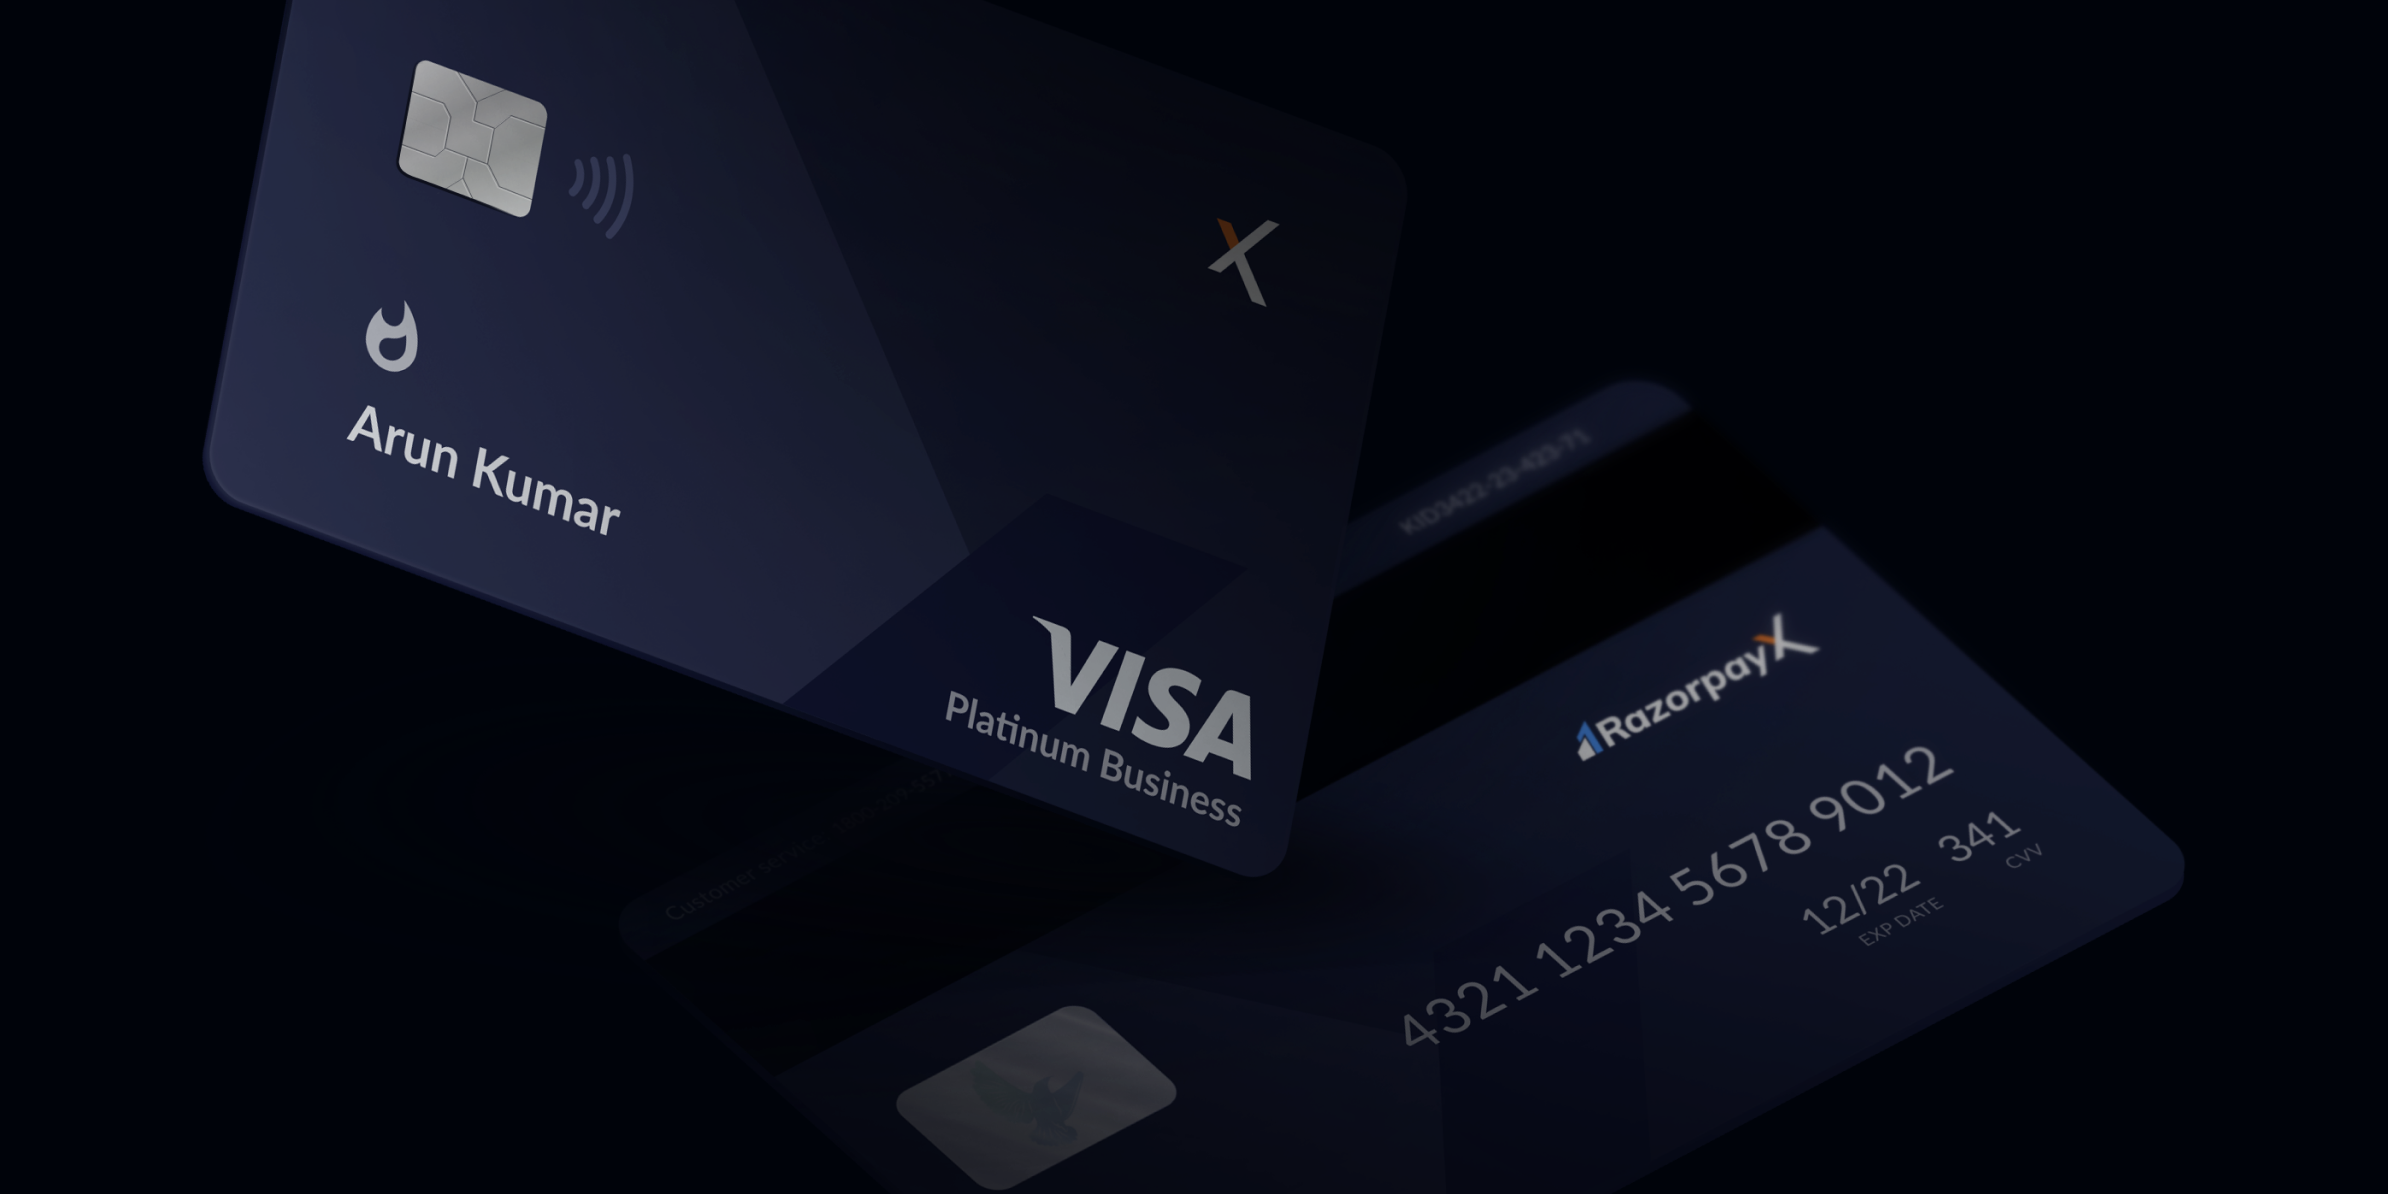 RazorpayX Partners with Visa to Launch Corporate Cards to Help SMEs Weather Covid-19